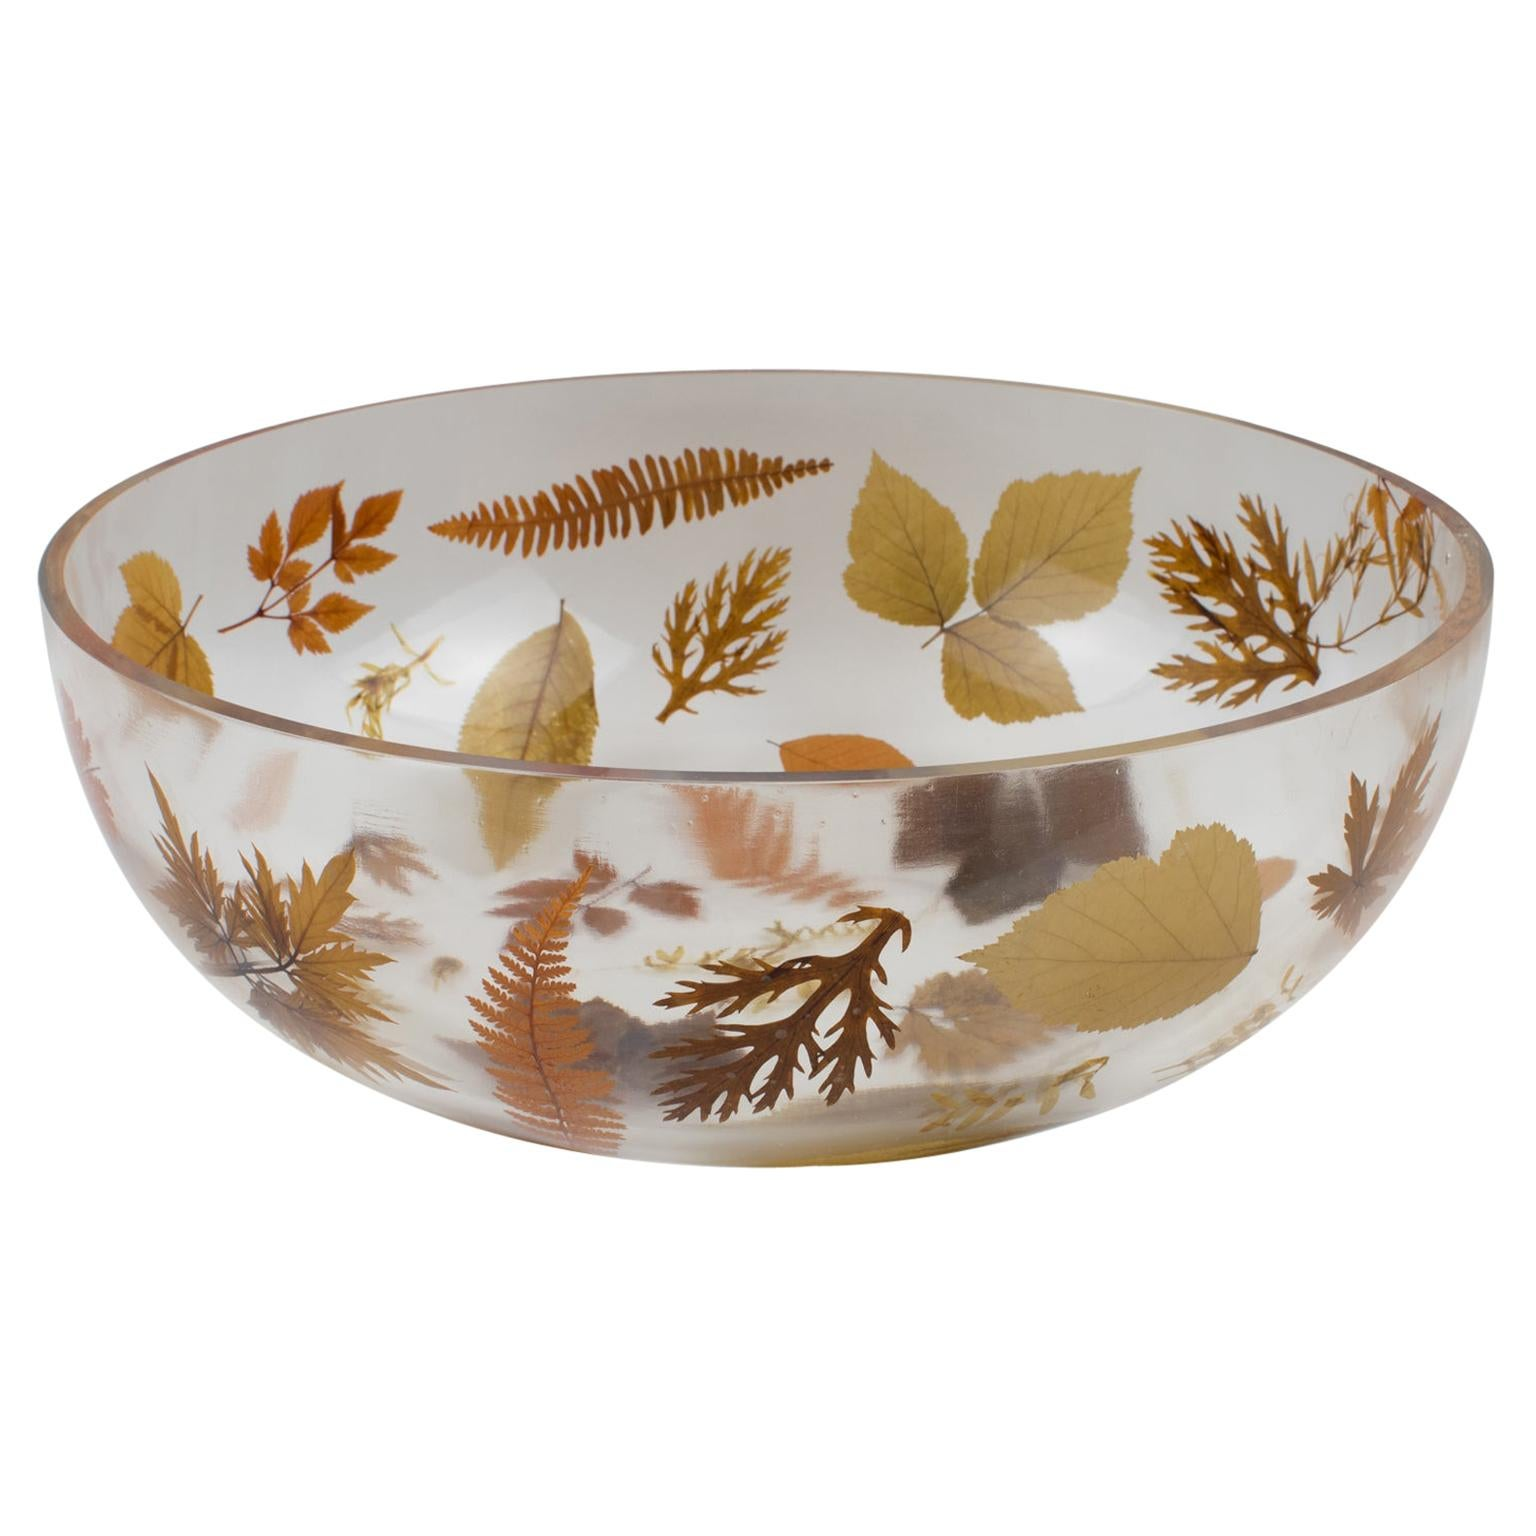 1970s Italian Resin Centerpiece Bowl with Leaves and Flowers Inclusions